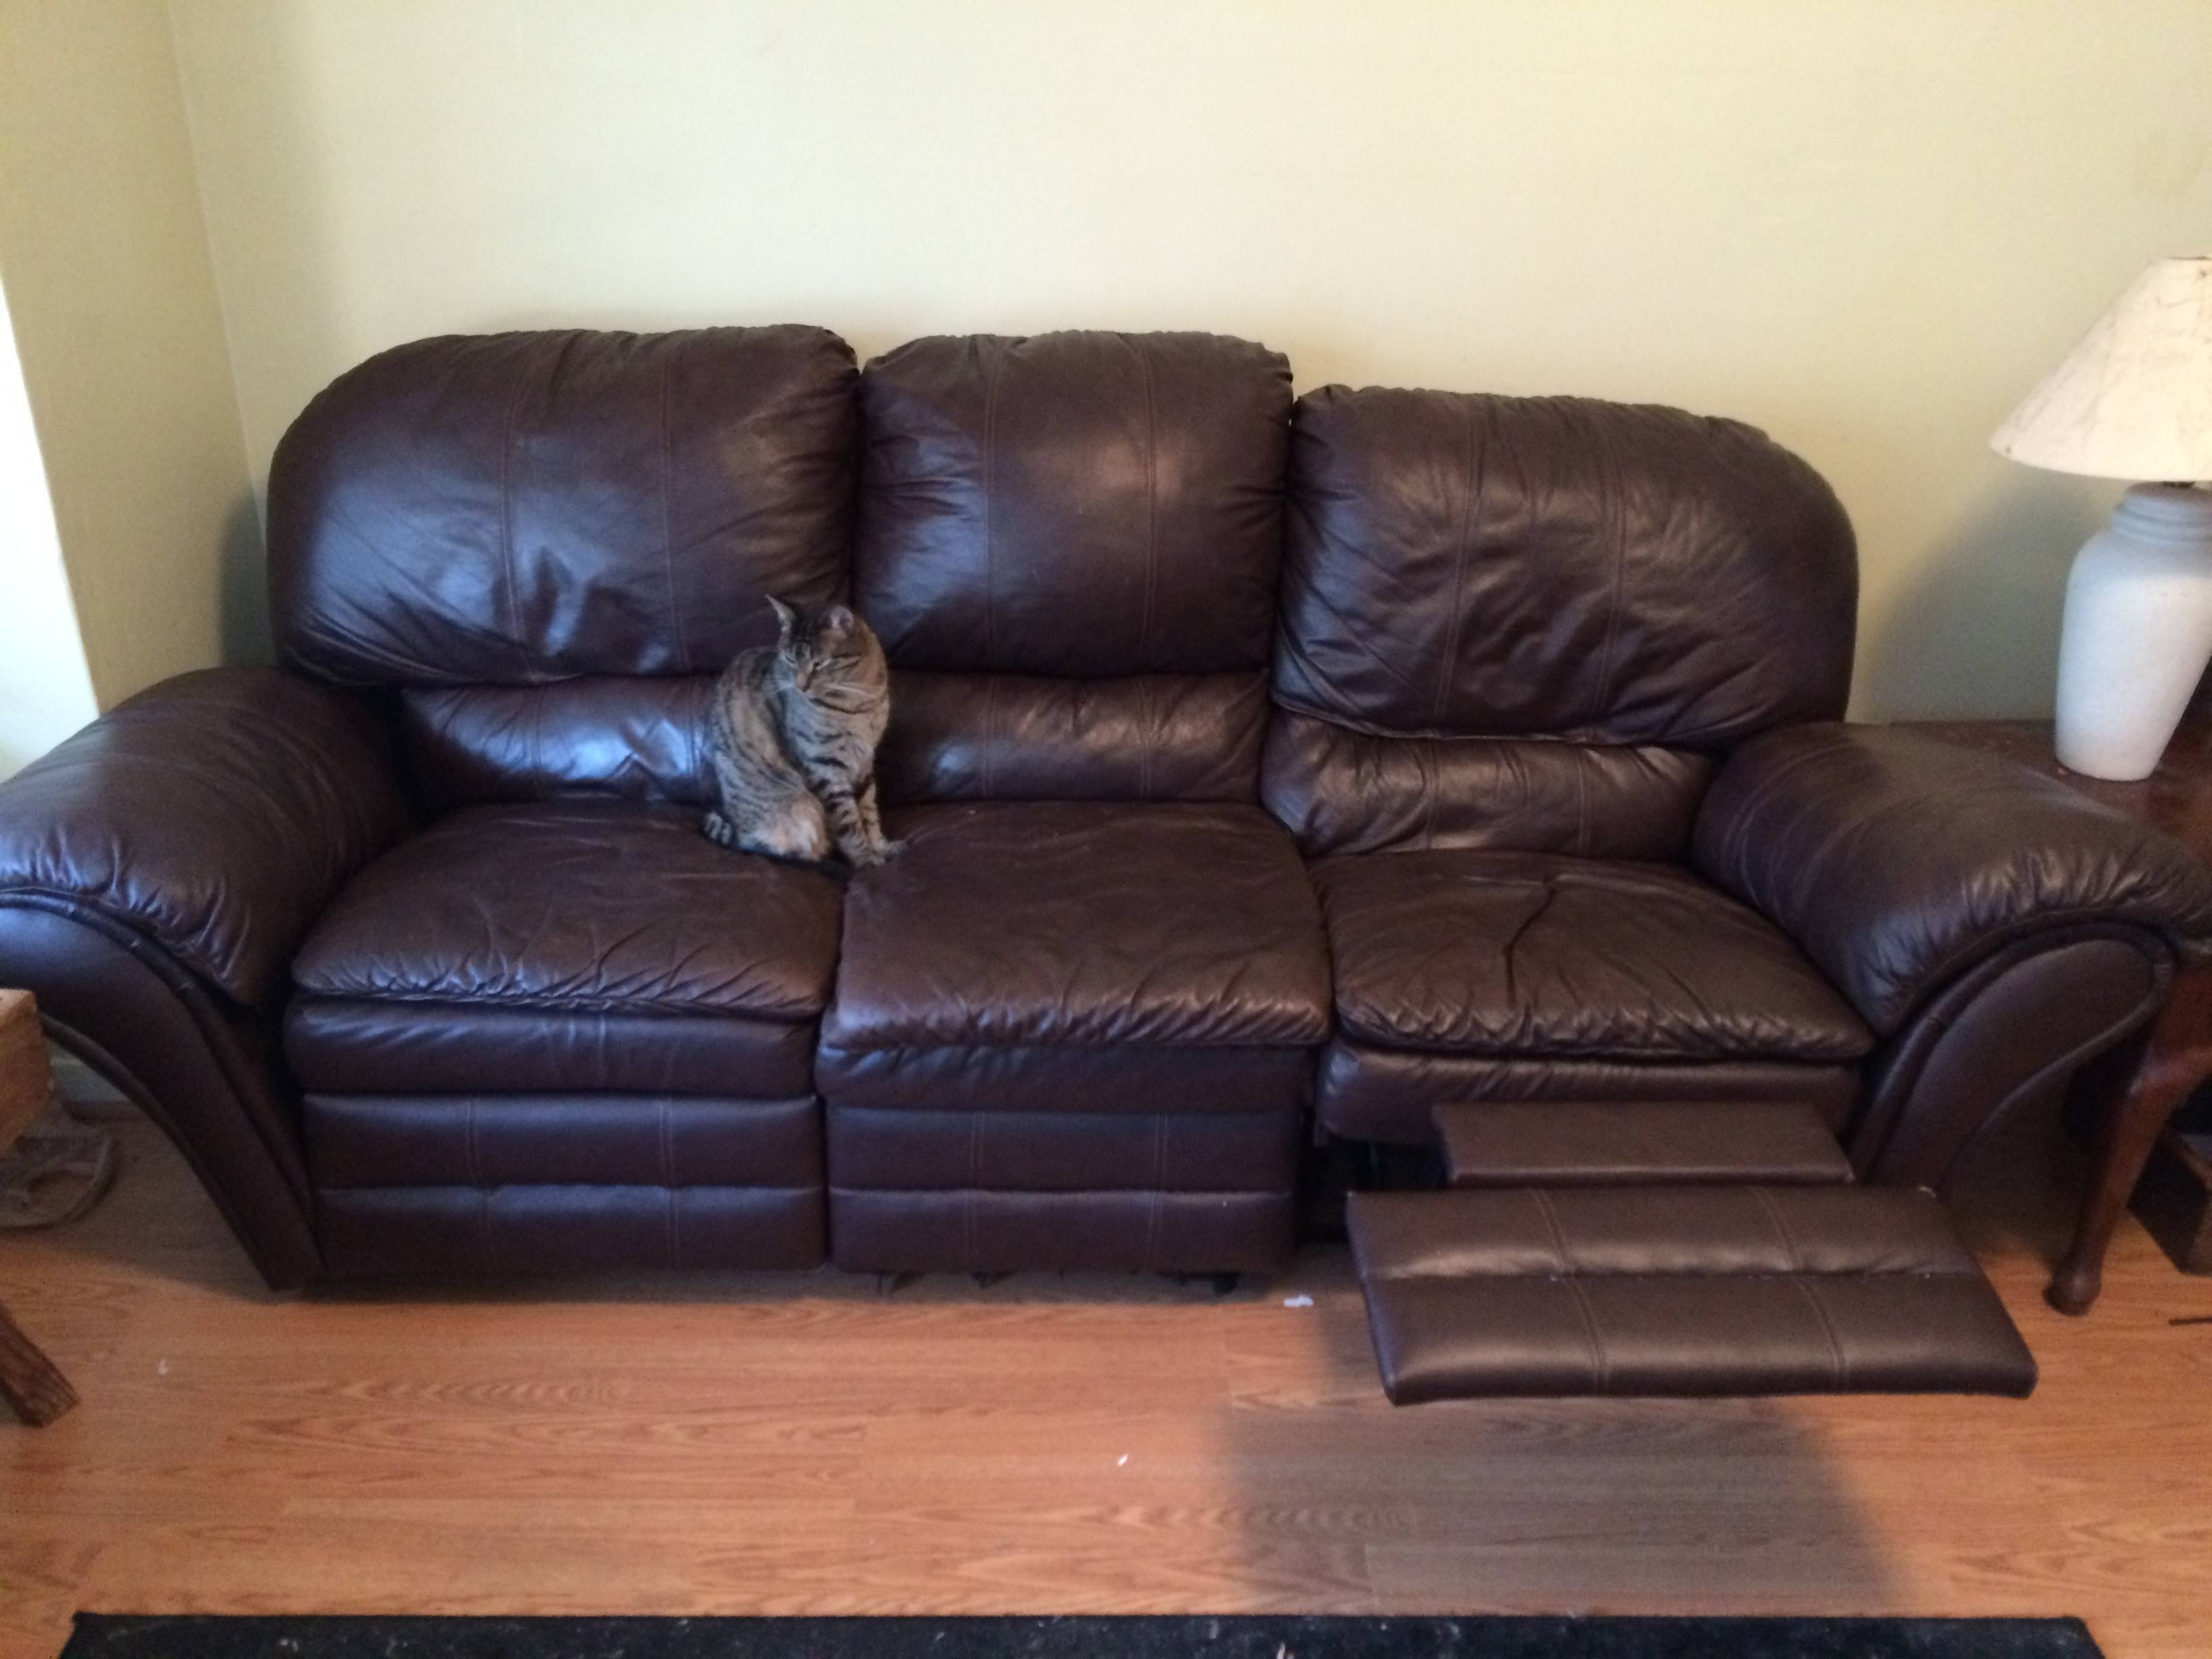 Sofas Center : Enchanting Ethan Allen Leather Sofa Craigslist within Craigslist Sleeper Sofa (Image 21 of 30)